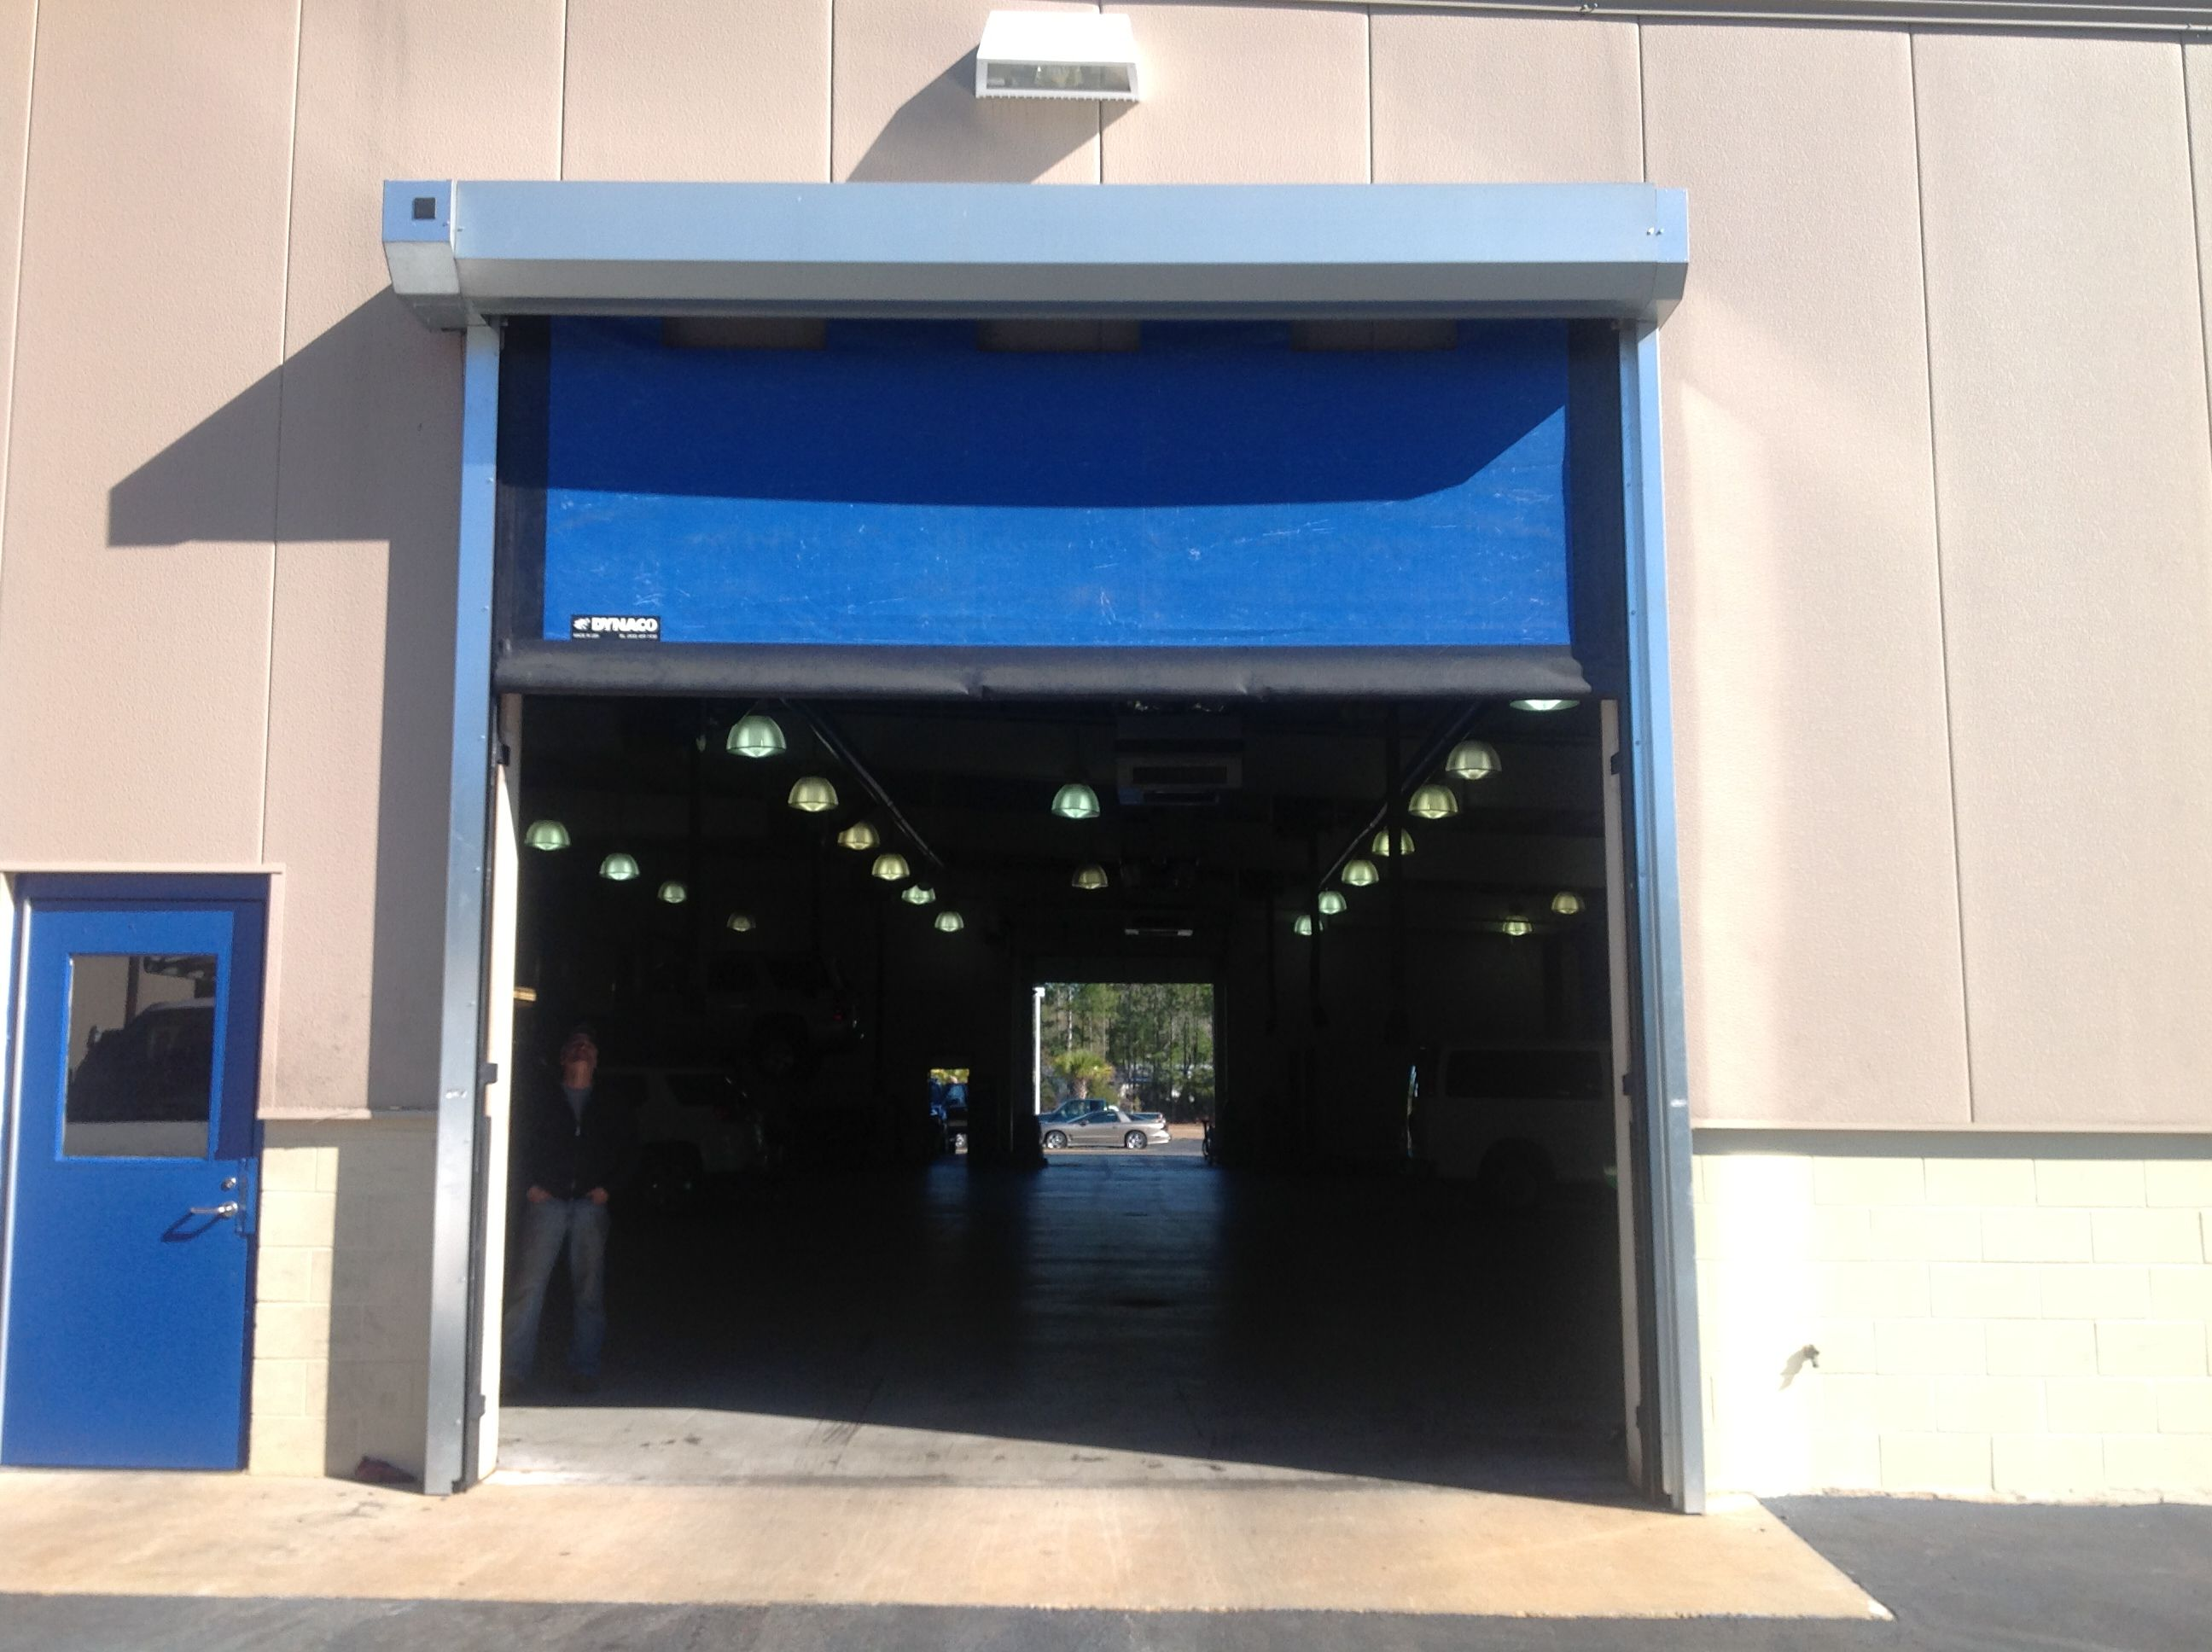 Dynaco Doors Exterior Mounted High Speed We sell and install Dynaco Doors .warehousecubed. & Dynaco Doors Exterior Mounted High Speed We sell and install ... pezcame.com